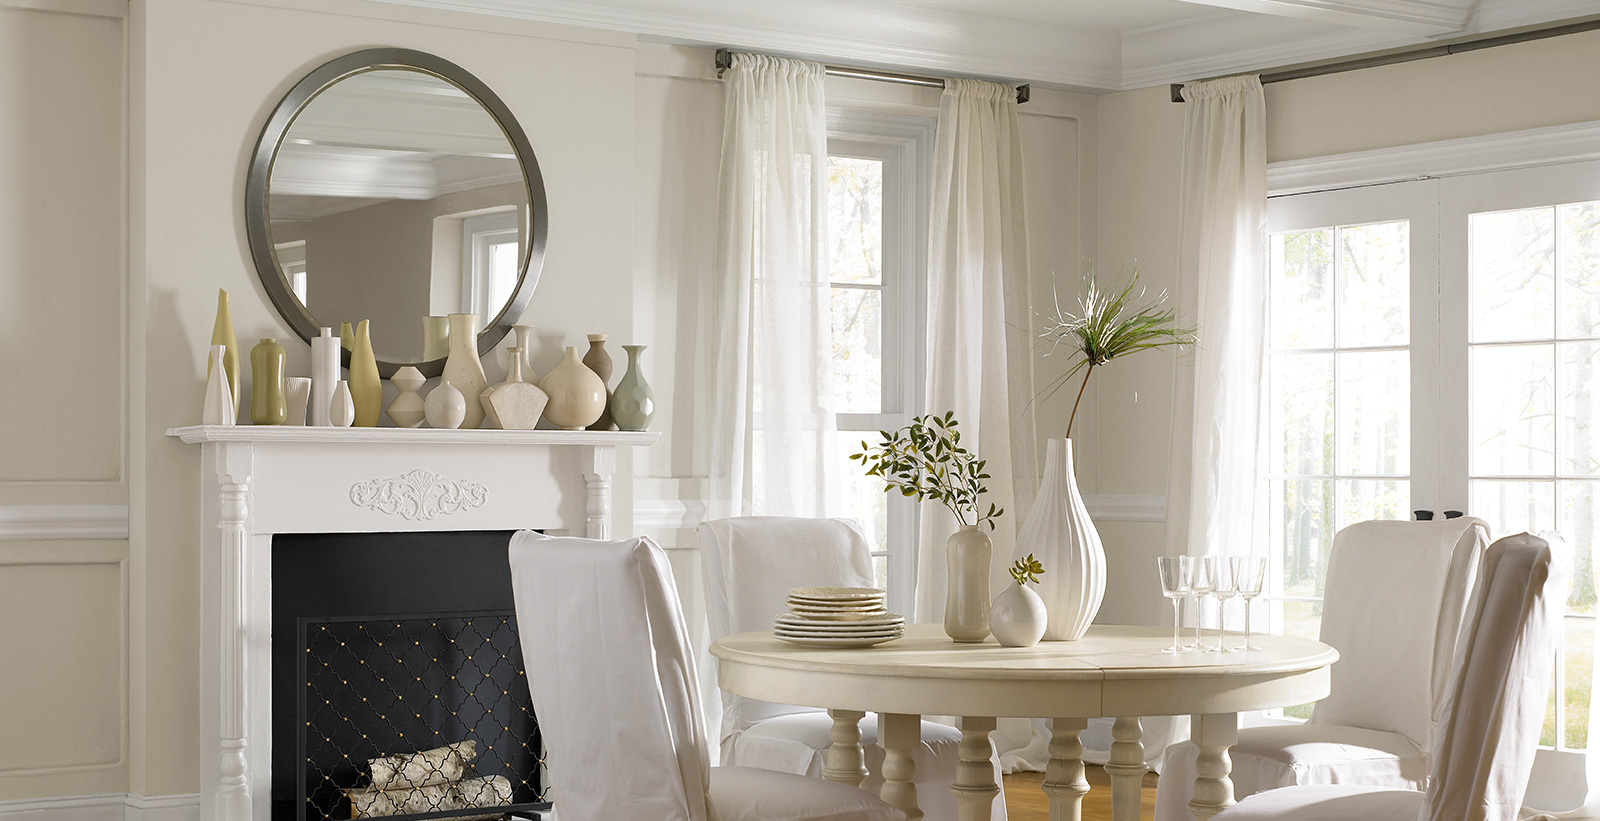 Relaxed style of dining room with off-white walls and white trim, with white stone fireplace and floor to ceiling windows.